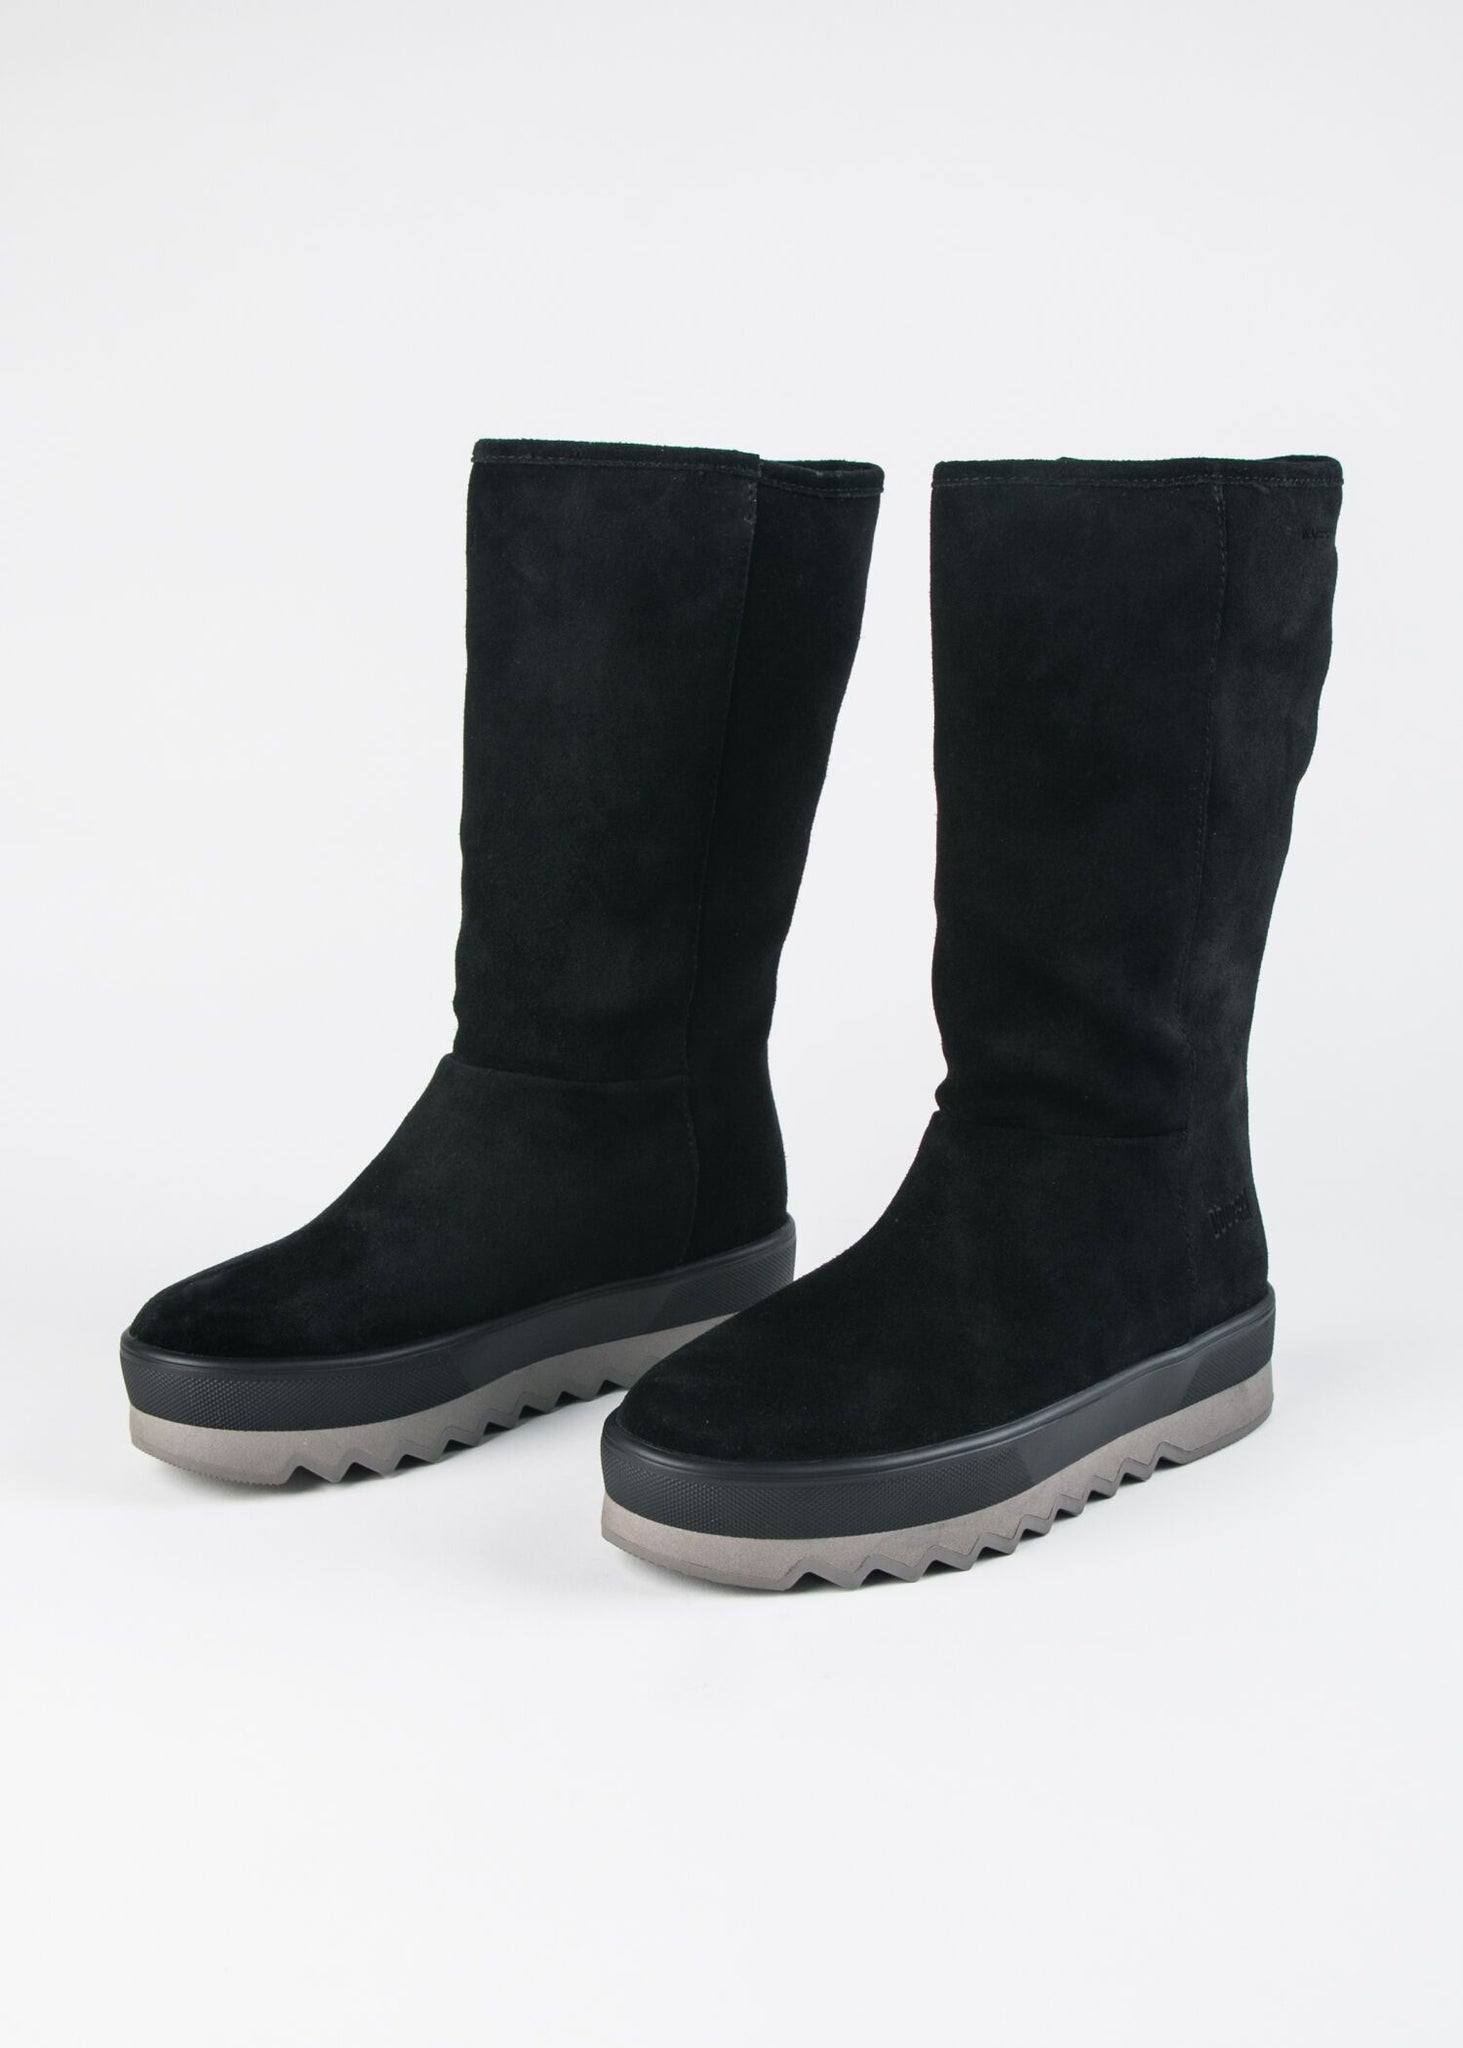 VAIL MID HEIGHT WATERPROOF PULL ON BOOT